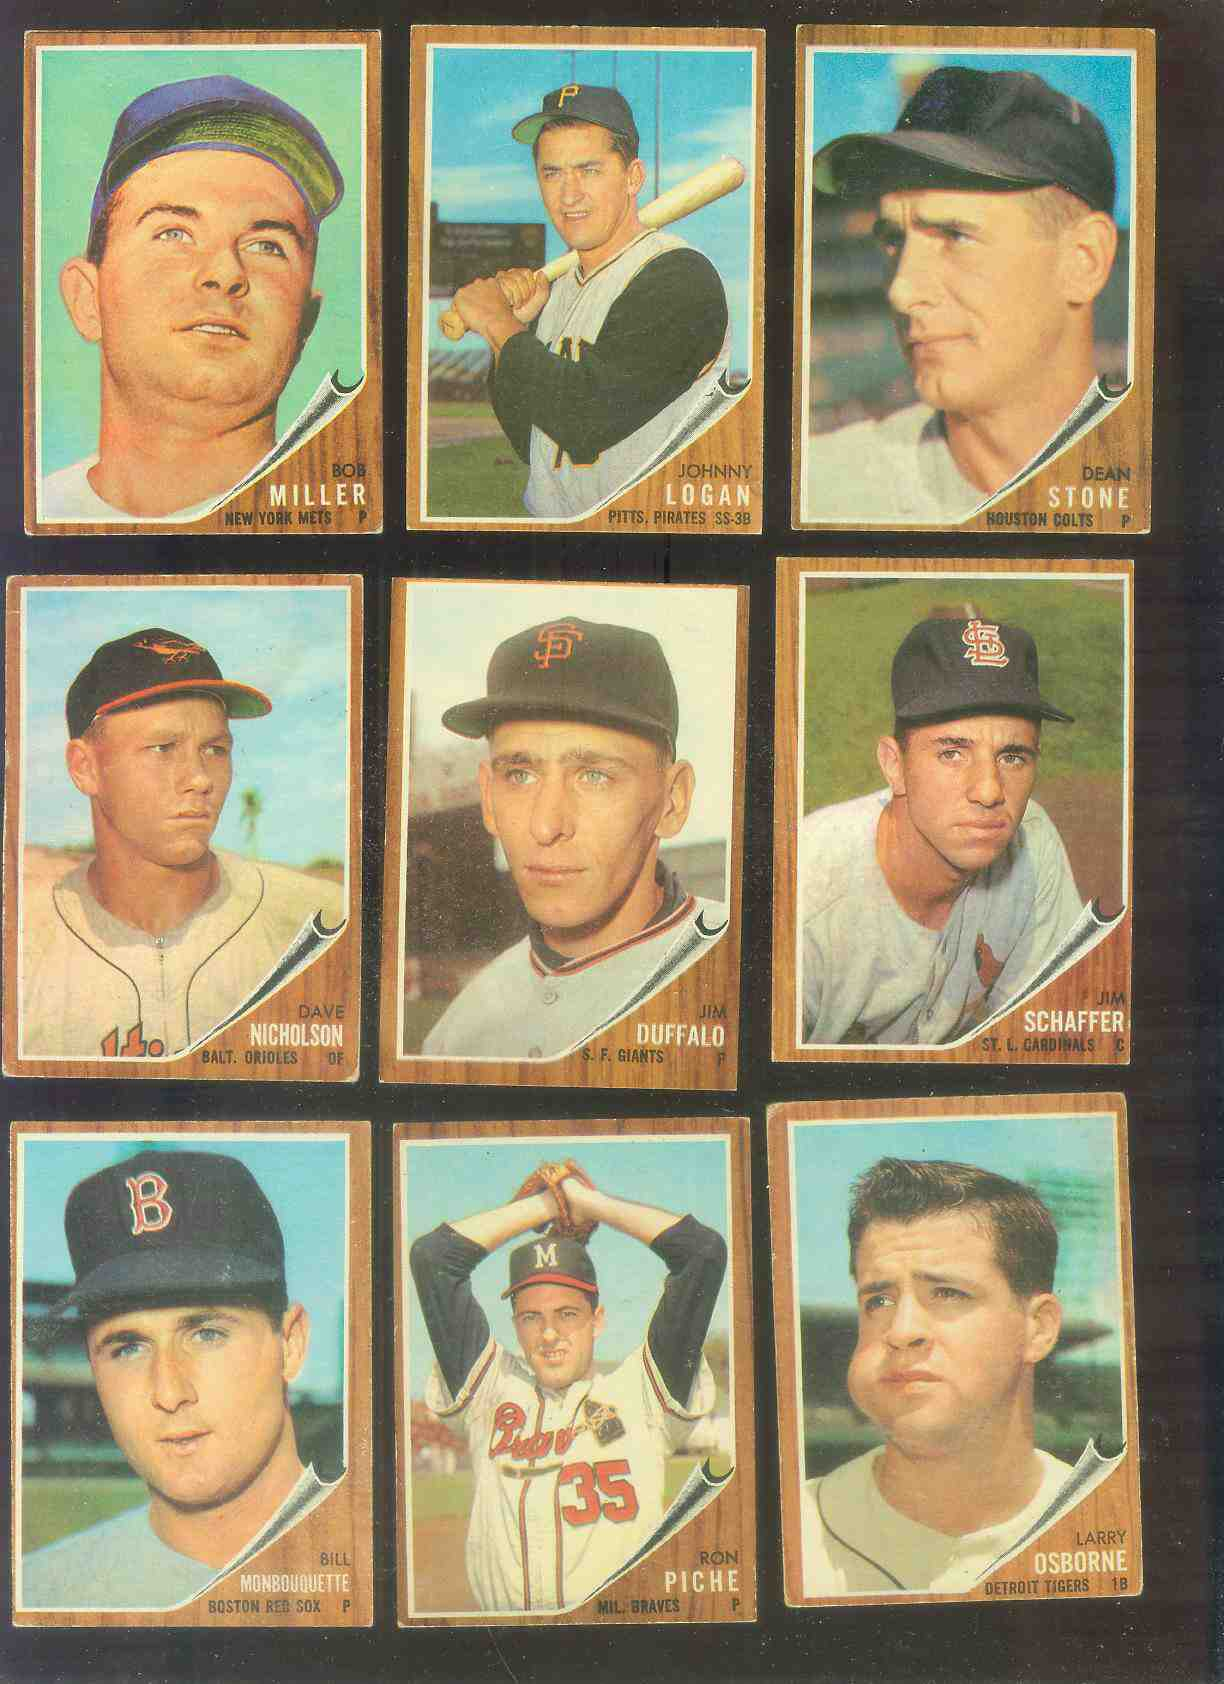 1962 Topps #585 Glen Hobbie SHORT PRINT [#x] HIGH #.(Cubs) Baseball cards value